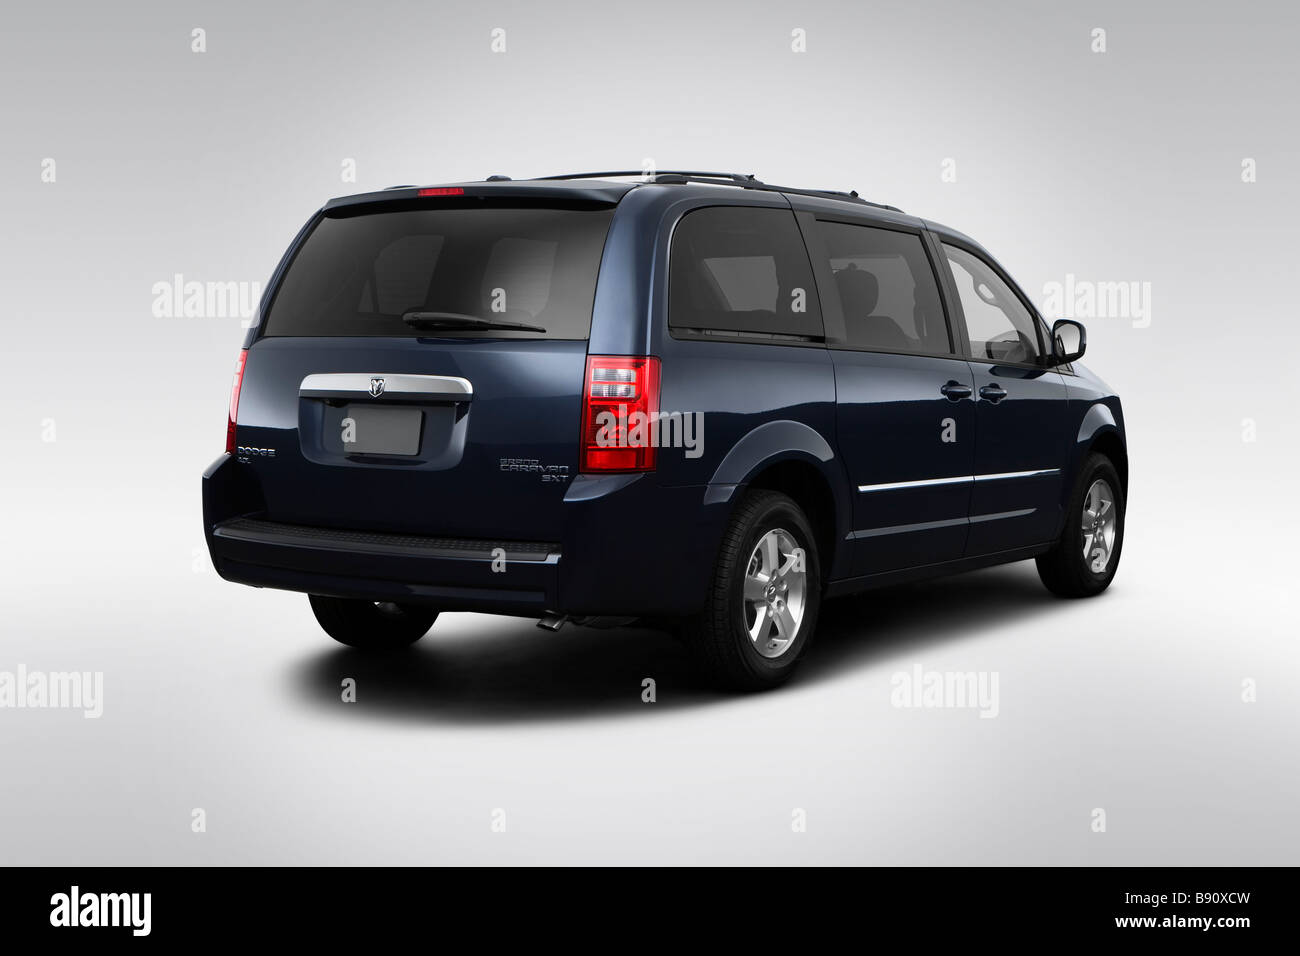 minivan chrysler stock photos minivan chrysler stock. Black Bedroom Furniture Sets. Home Design Ideas